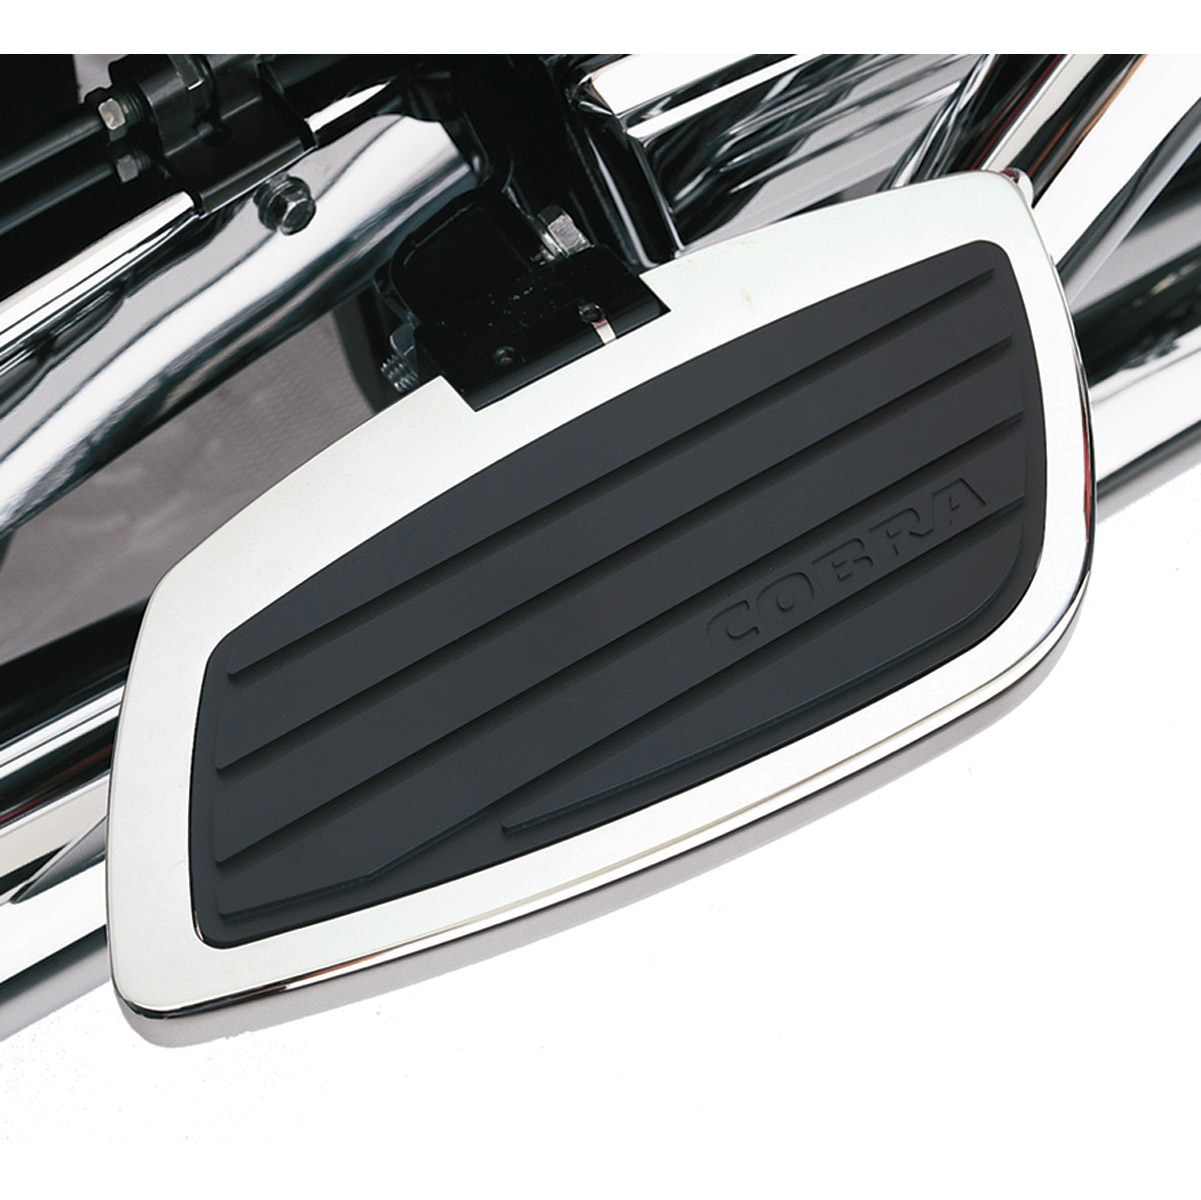 Cobra Classic Front Floorboard Kit for Yamaha